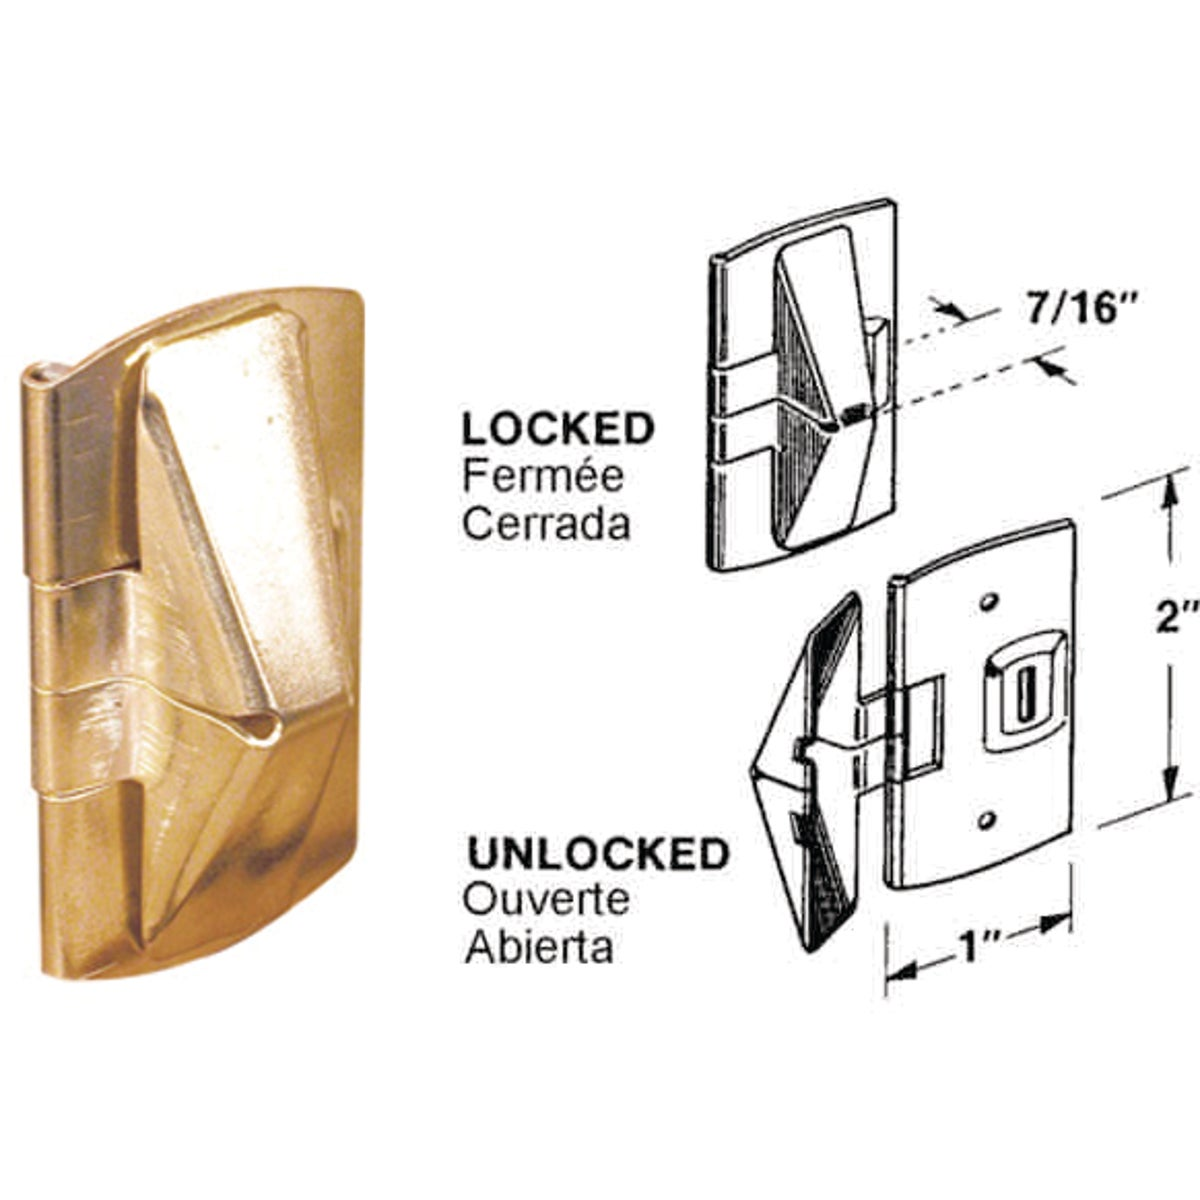 2PK WOOD WINDOW LOCK - U 9938 by Prime Line Products